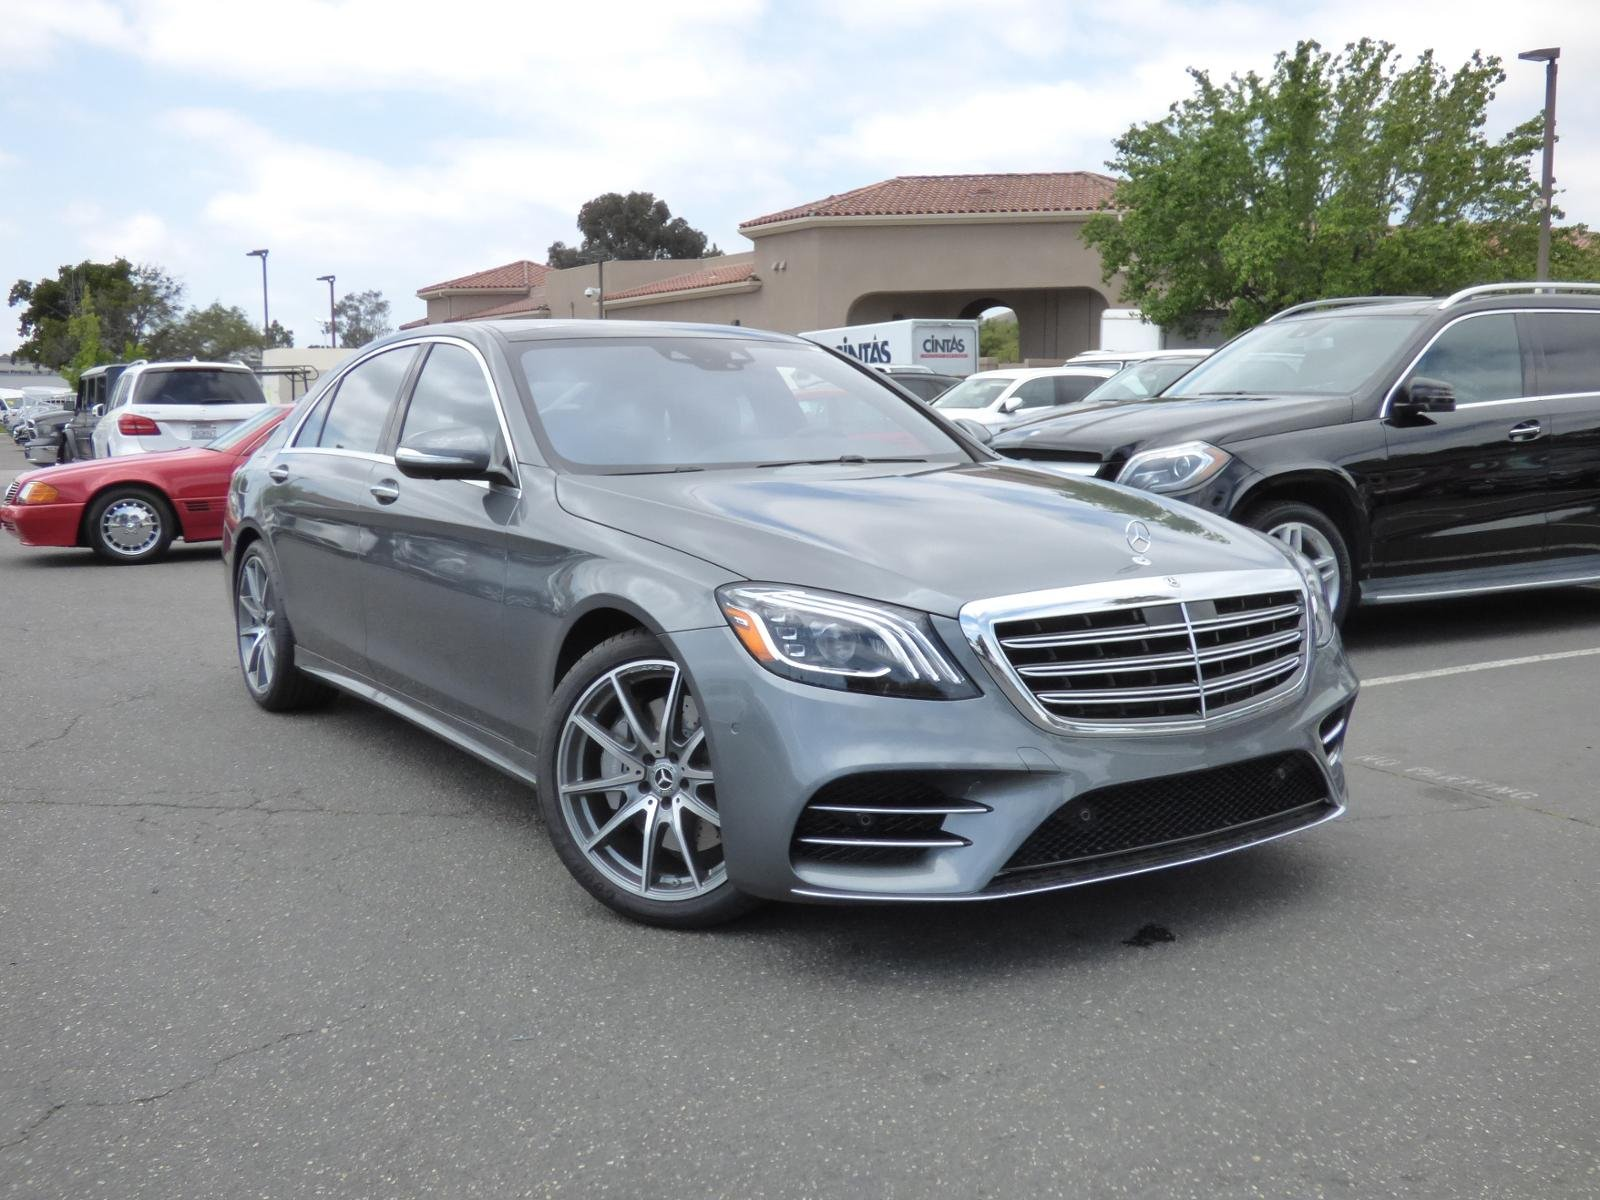 New 2018 Mercedes Benz S Class S 450 SEDAN in Thousand Oaks